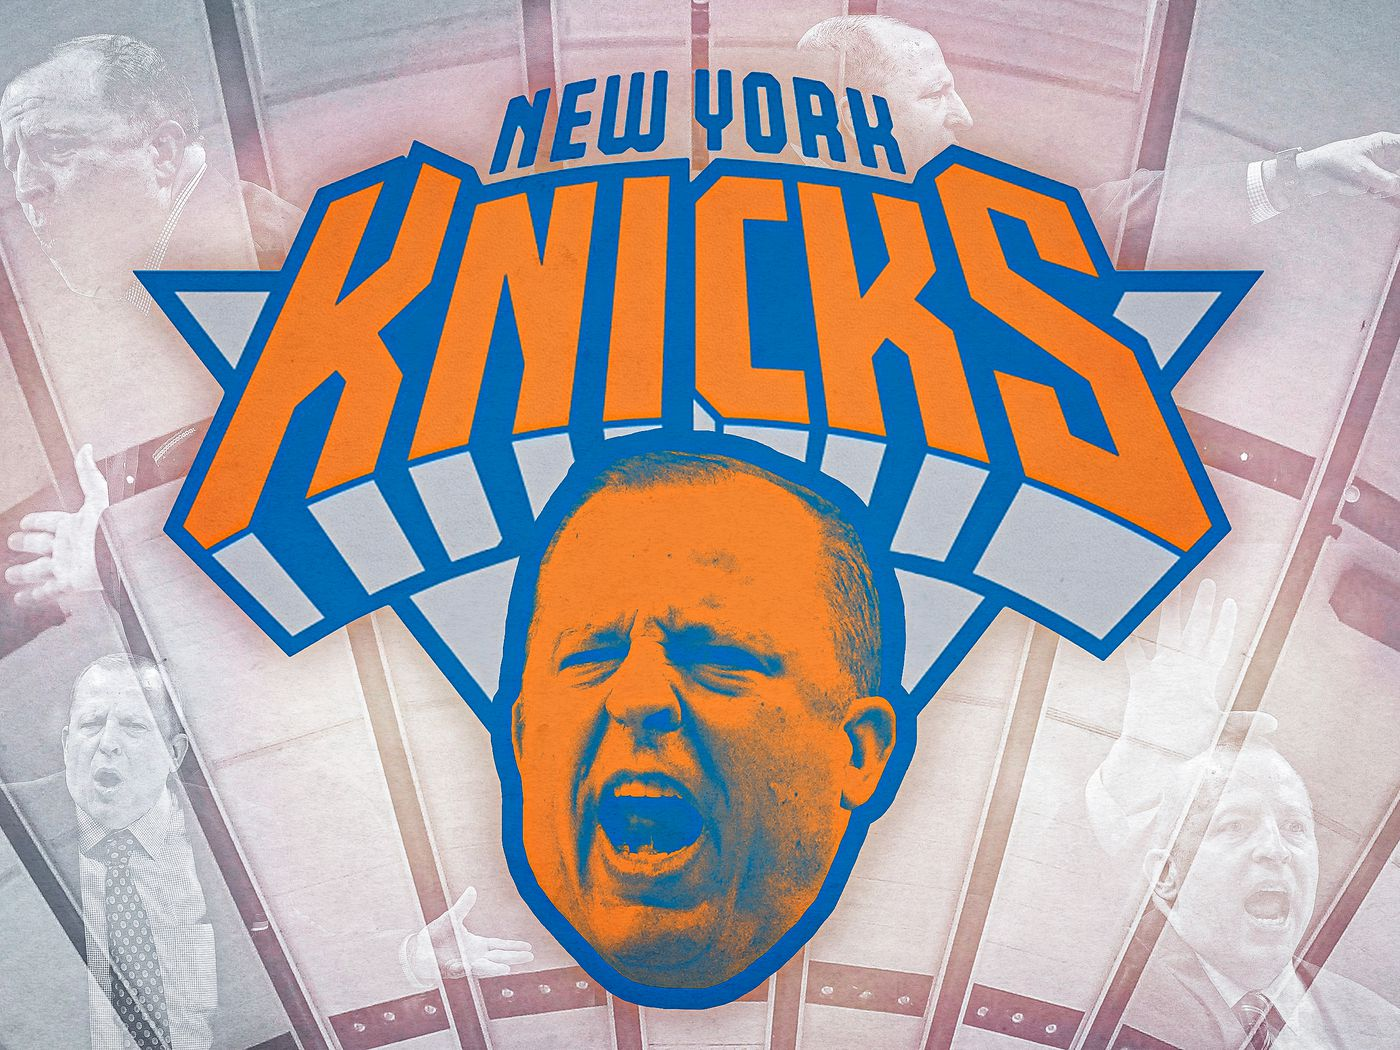 There's No Joy in the Knicks' Hiring of Tom Thibodeau - The Ringer